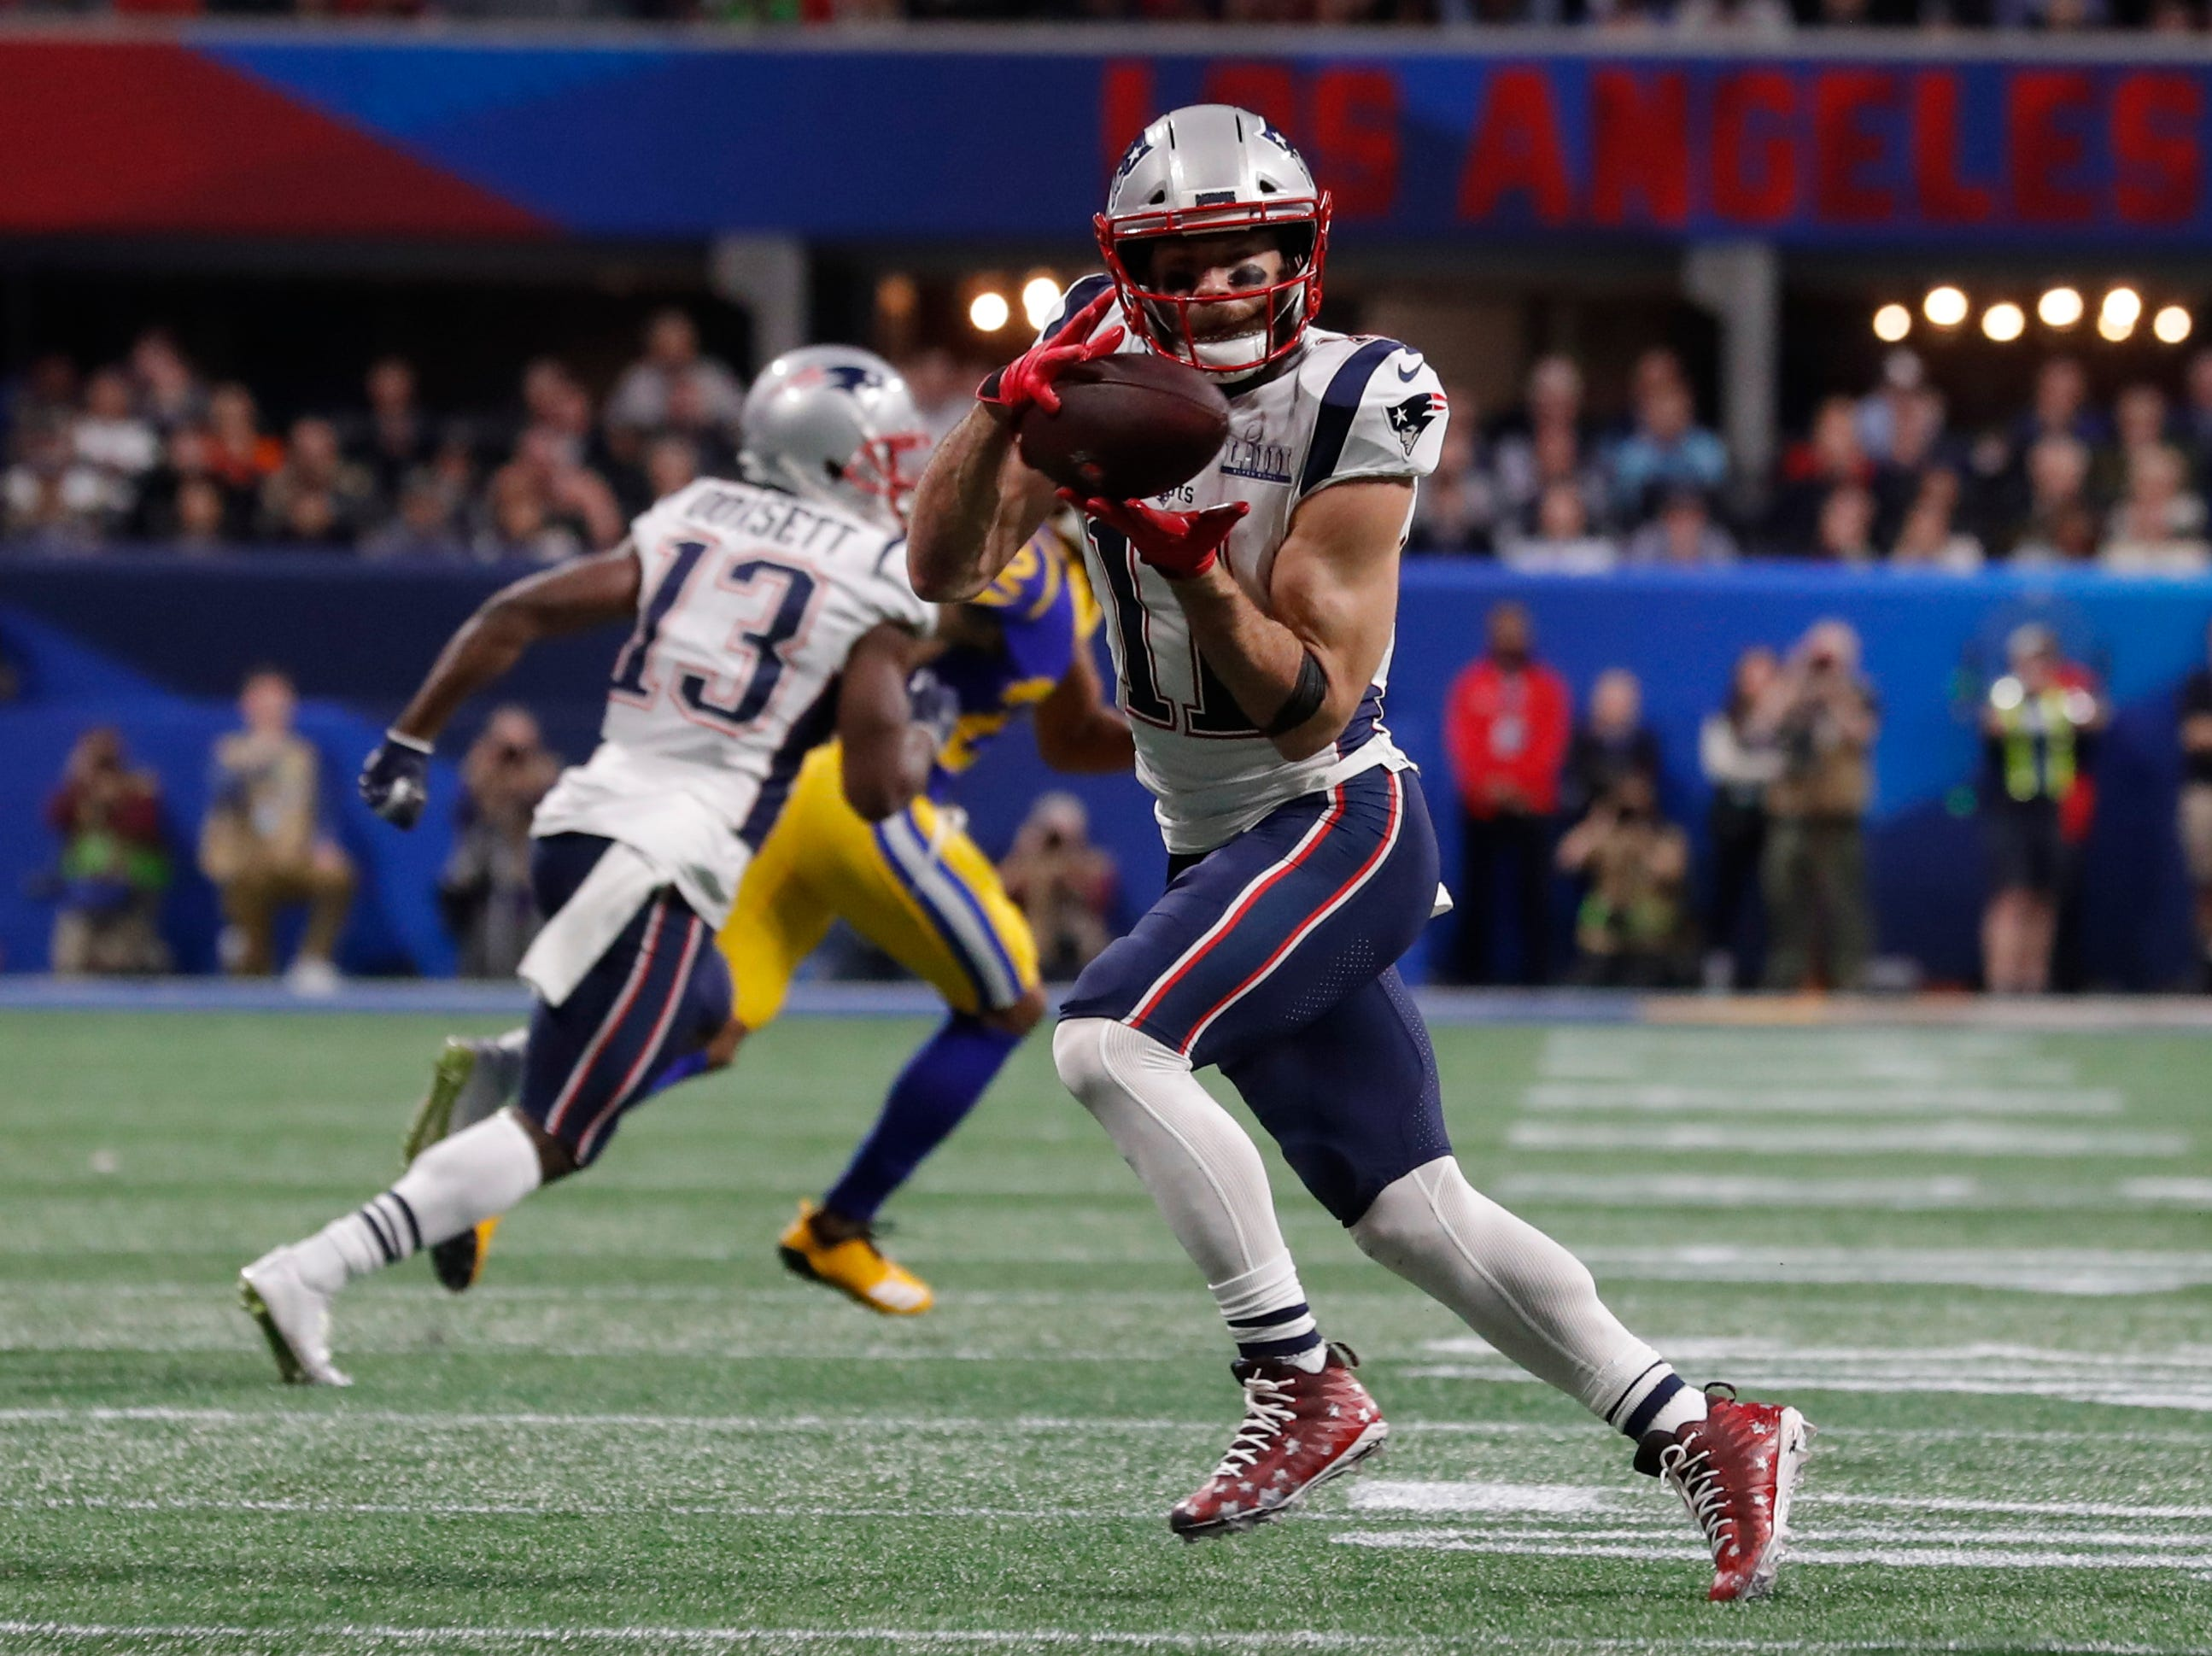 New England Patriots' Julian Edelman (11) makes a catch during the first half.